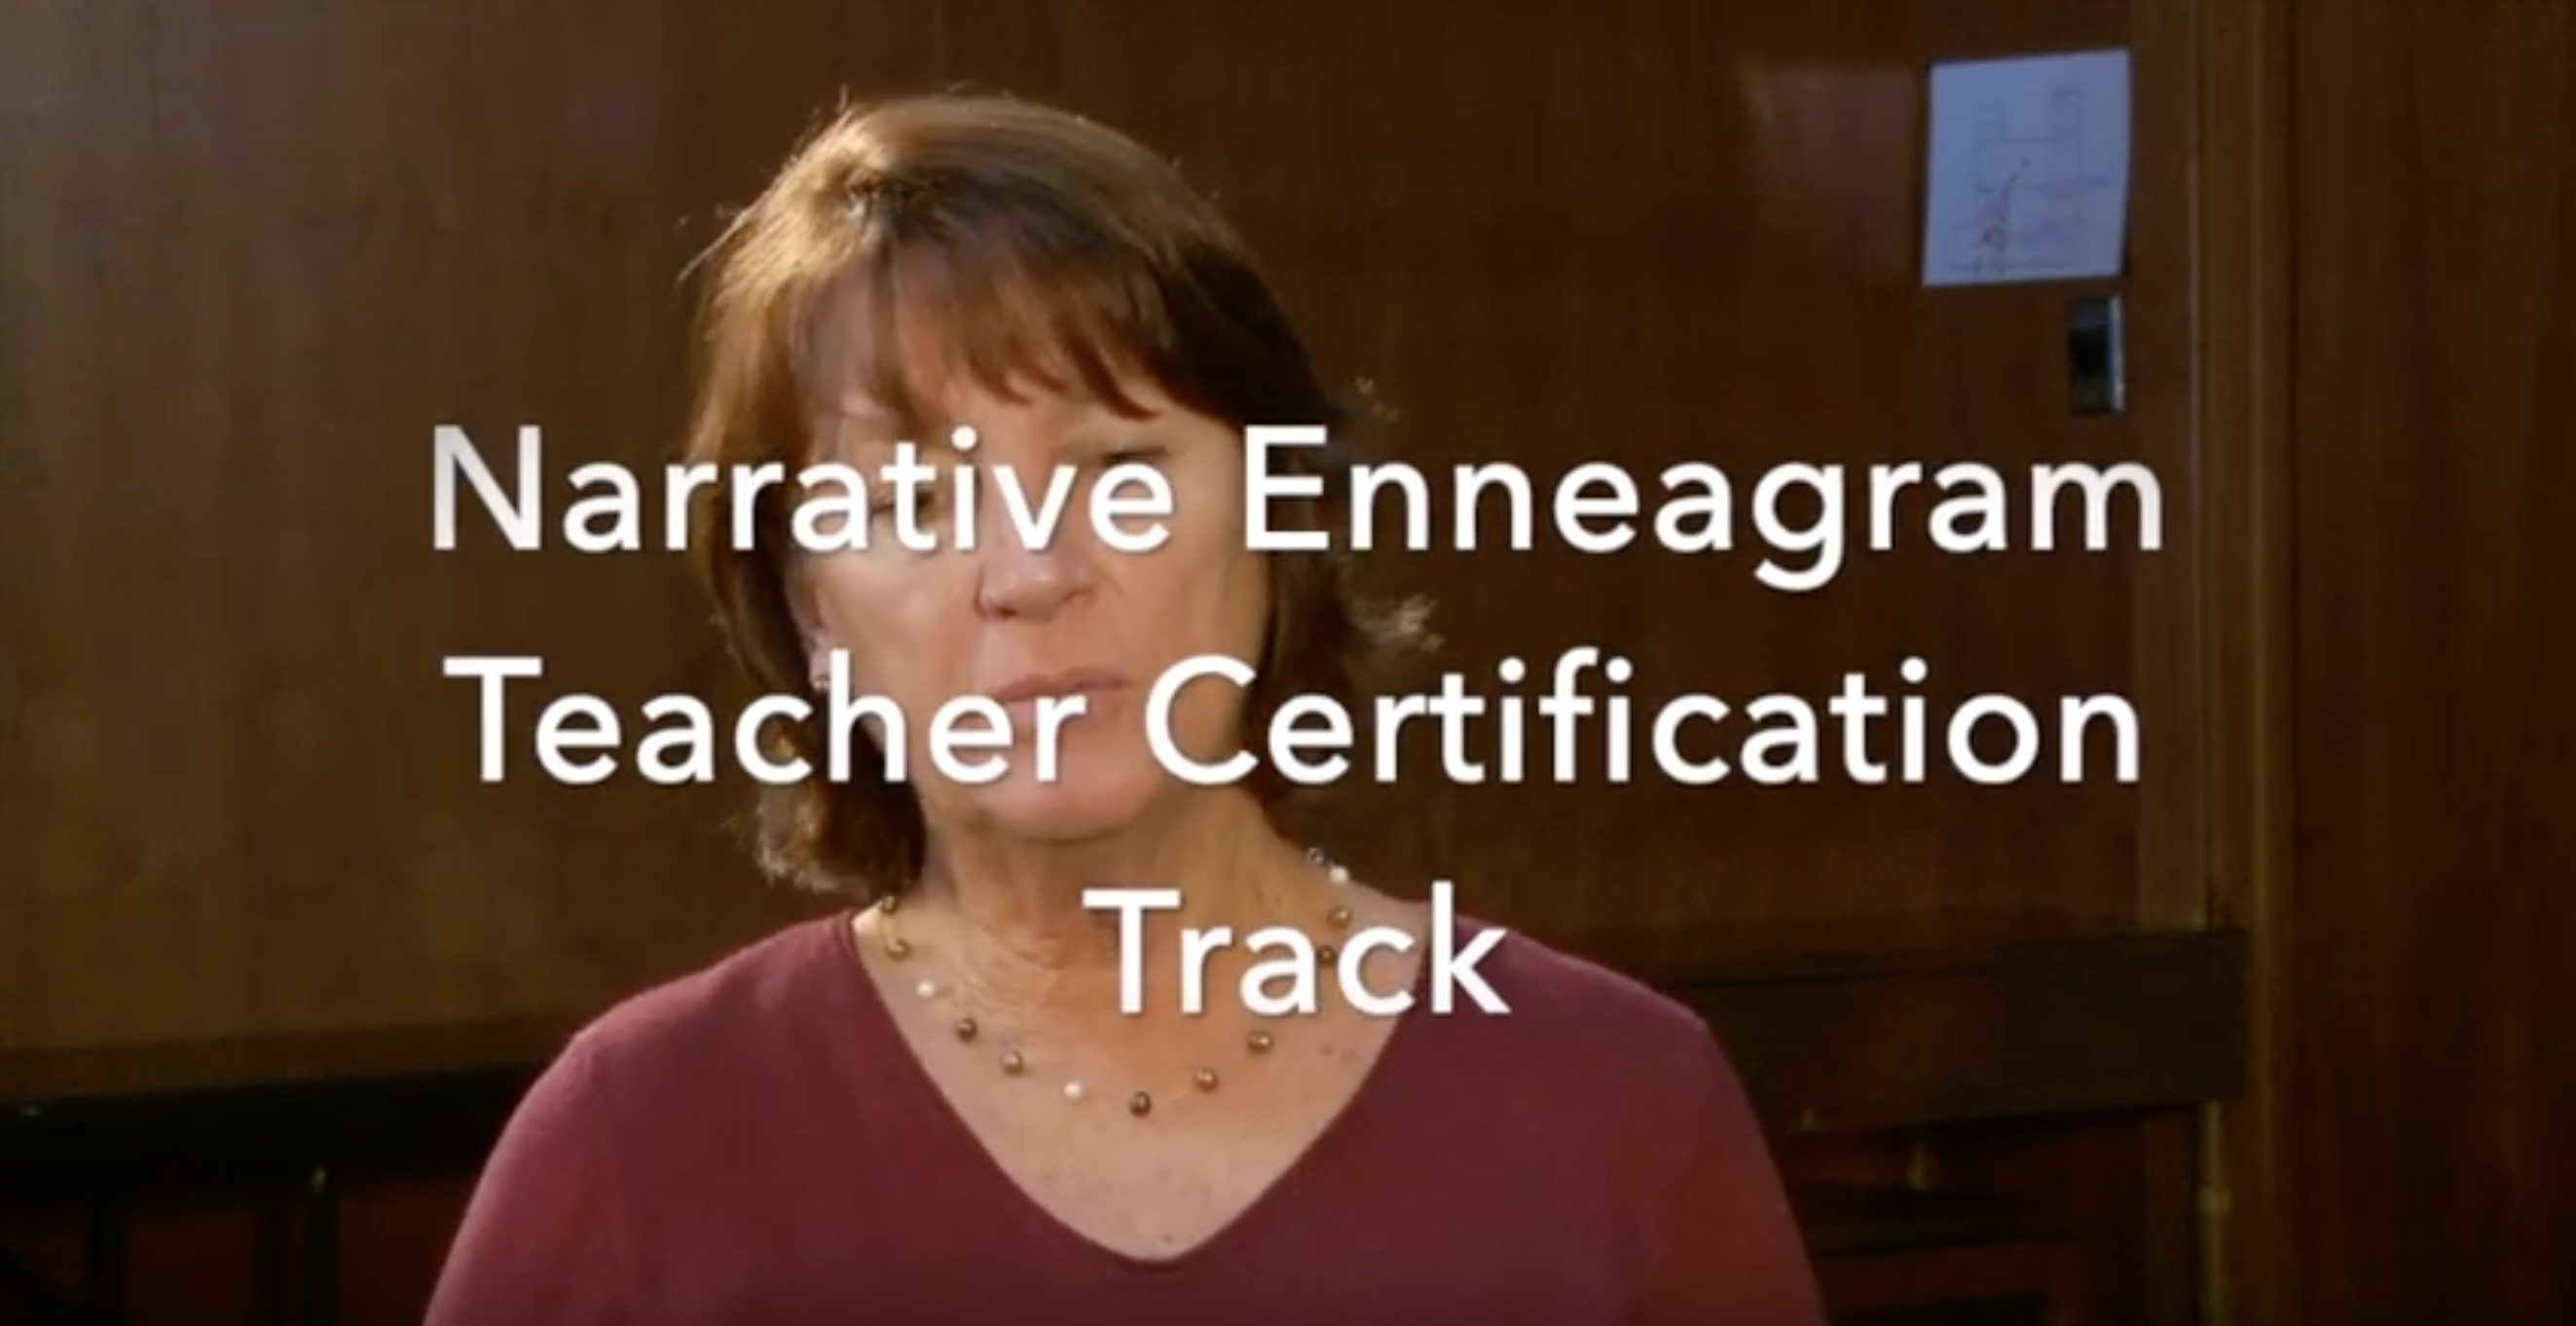 enneagram-intensive-2.0-video